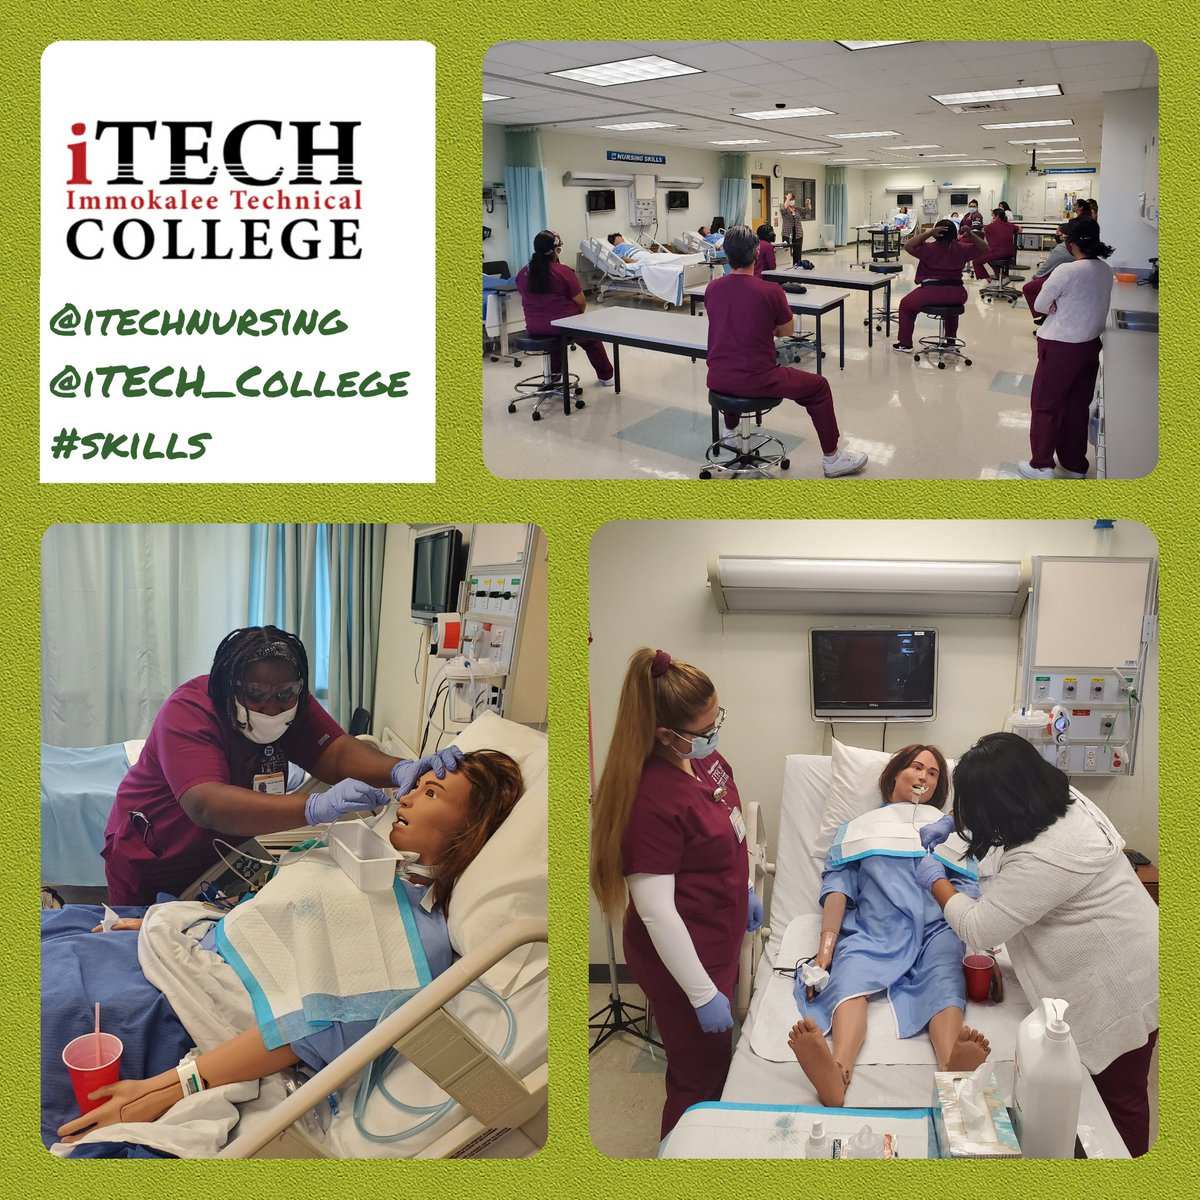 @iTechNursing students practicing nasogastric tube #skills in our realistic nursing labs preparing for the future!   #handsonlearning #technicaleducation #nursing #itechnursing #itechcollege #ccpssuccess #ccpsfamily  @iTECH_College @collierschools https://t.co/OU28yjDIE4